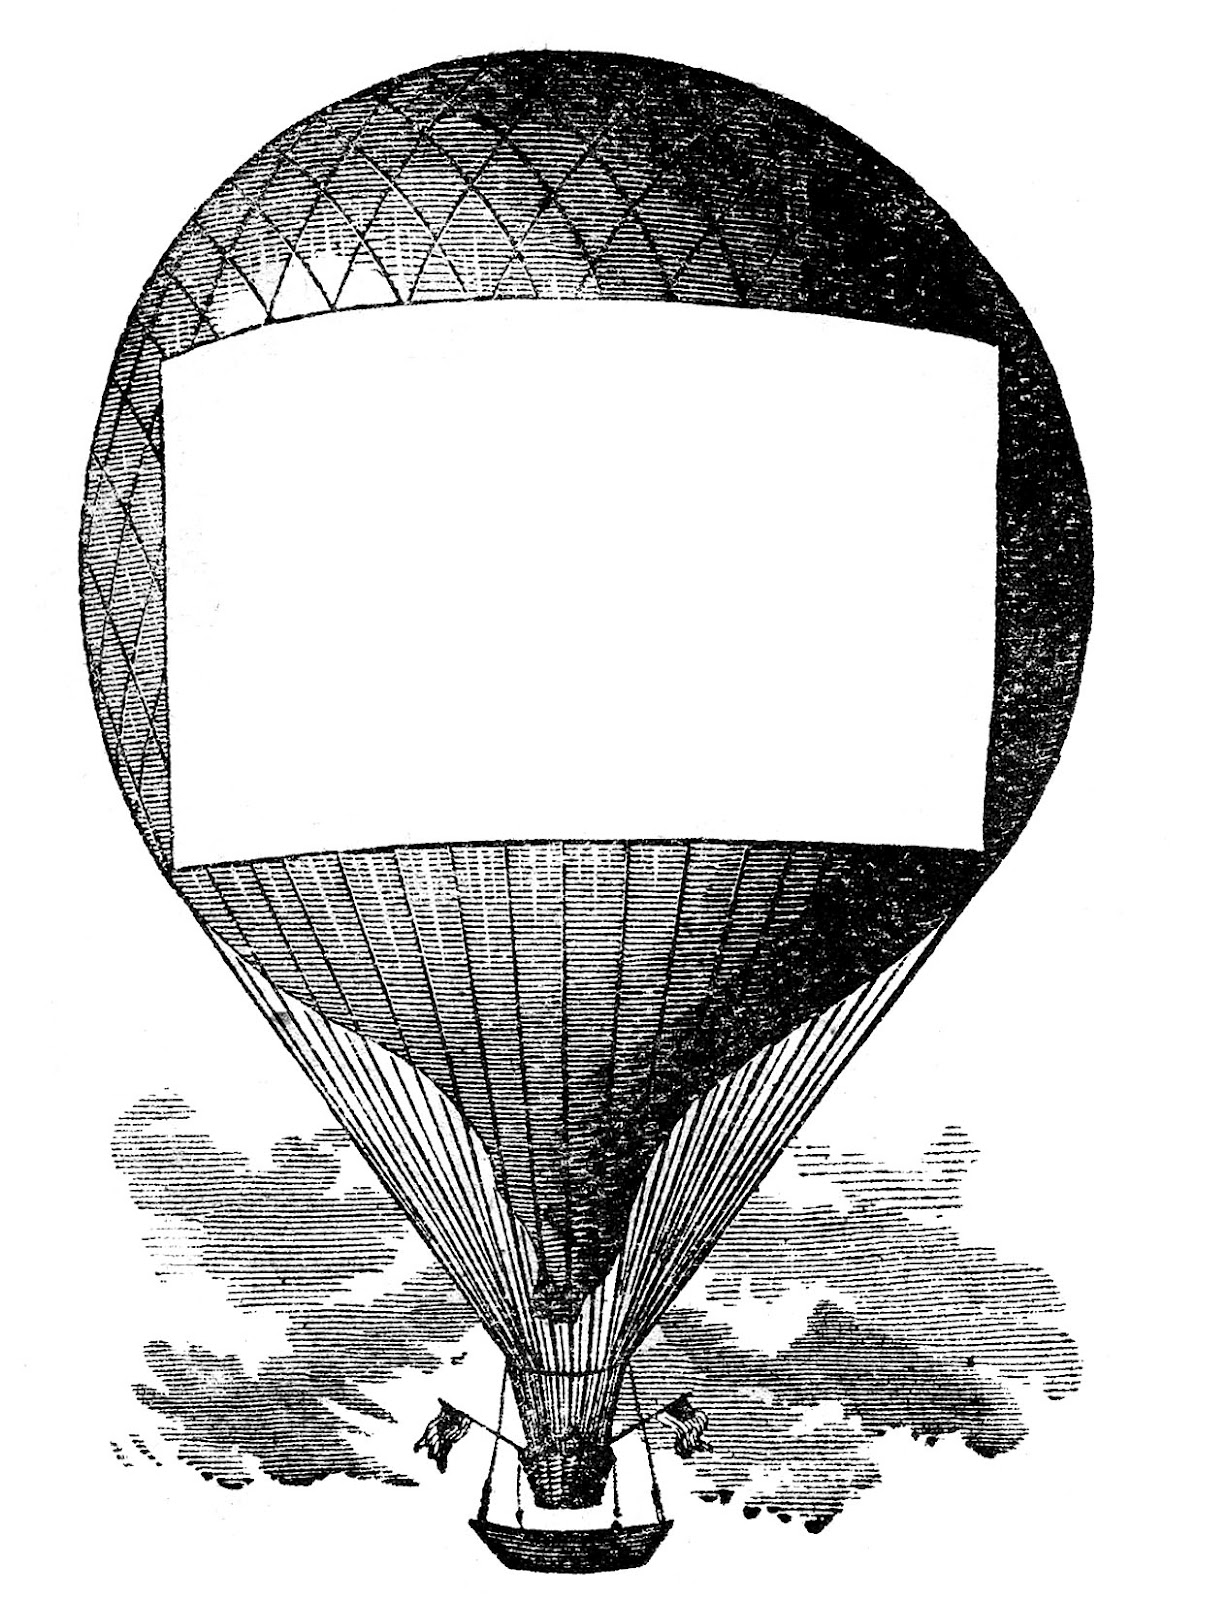 Advertising Clip Art - Hot Air Balloon - Steampunk - The Graphics ...